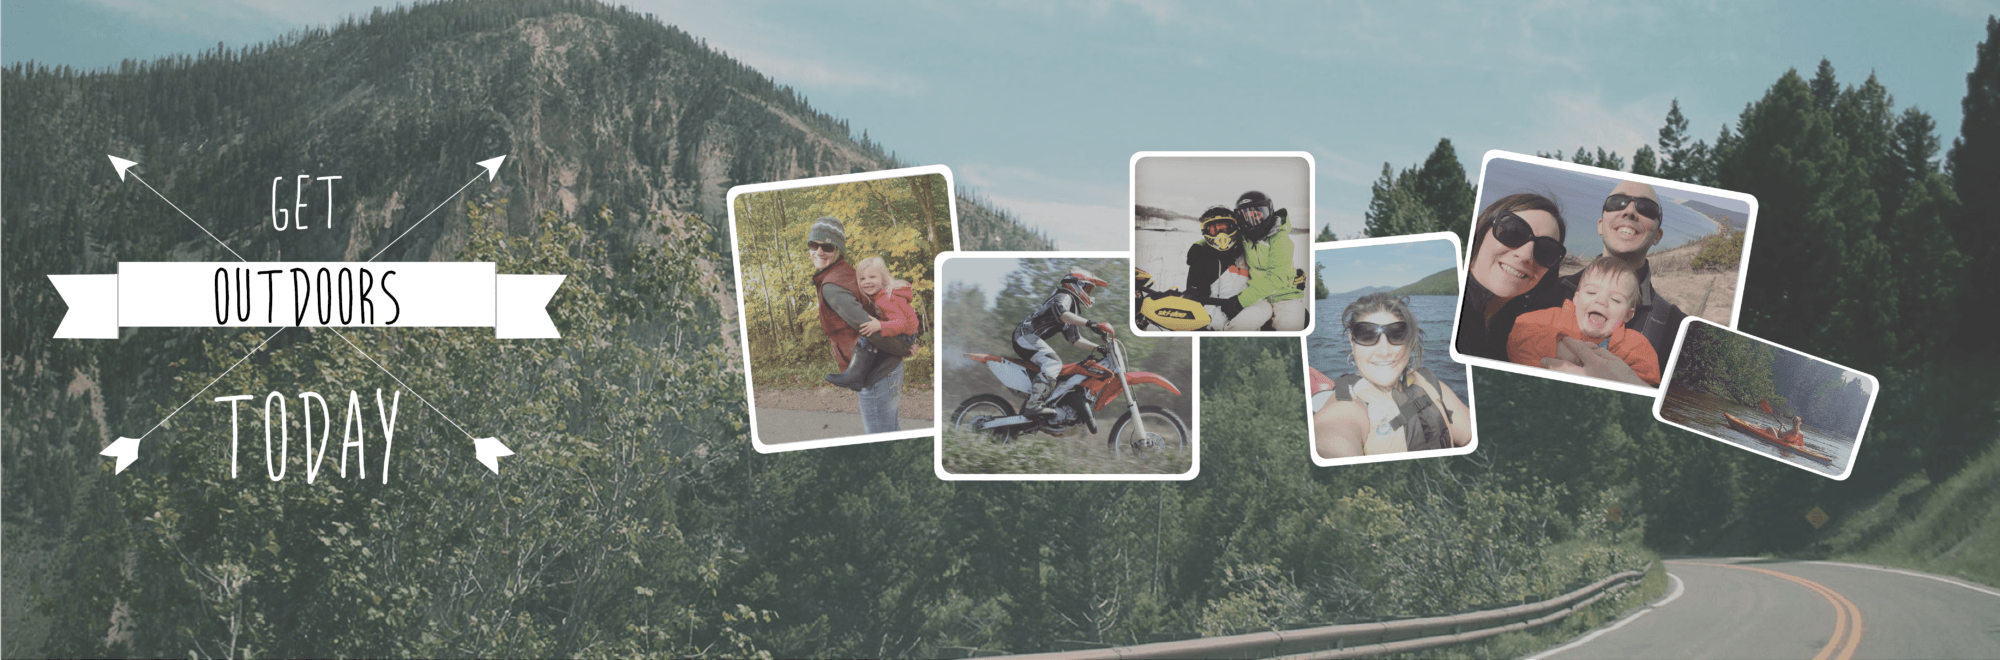 finance a RV, boat, or bicycle with a loan from tba credit union